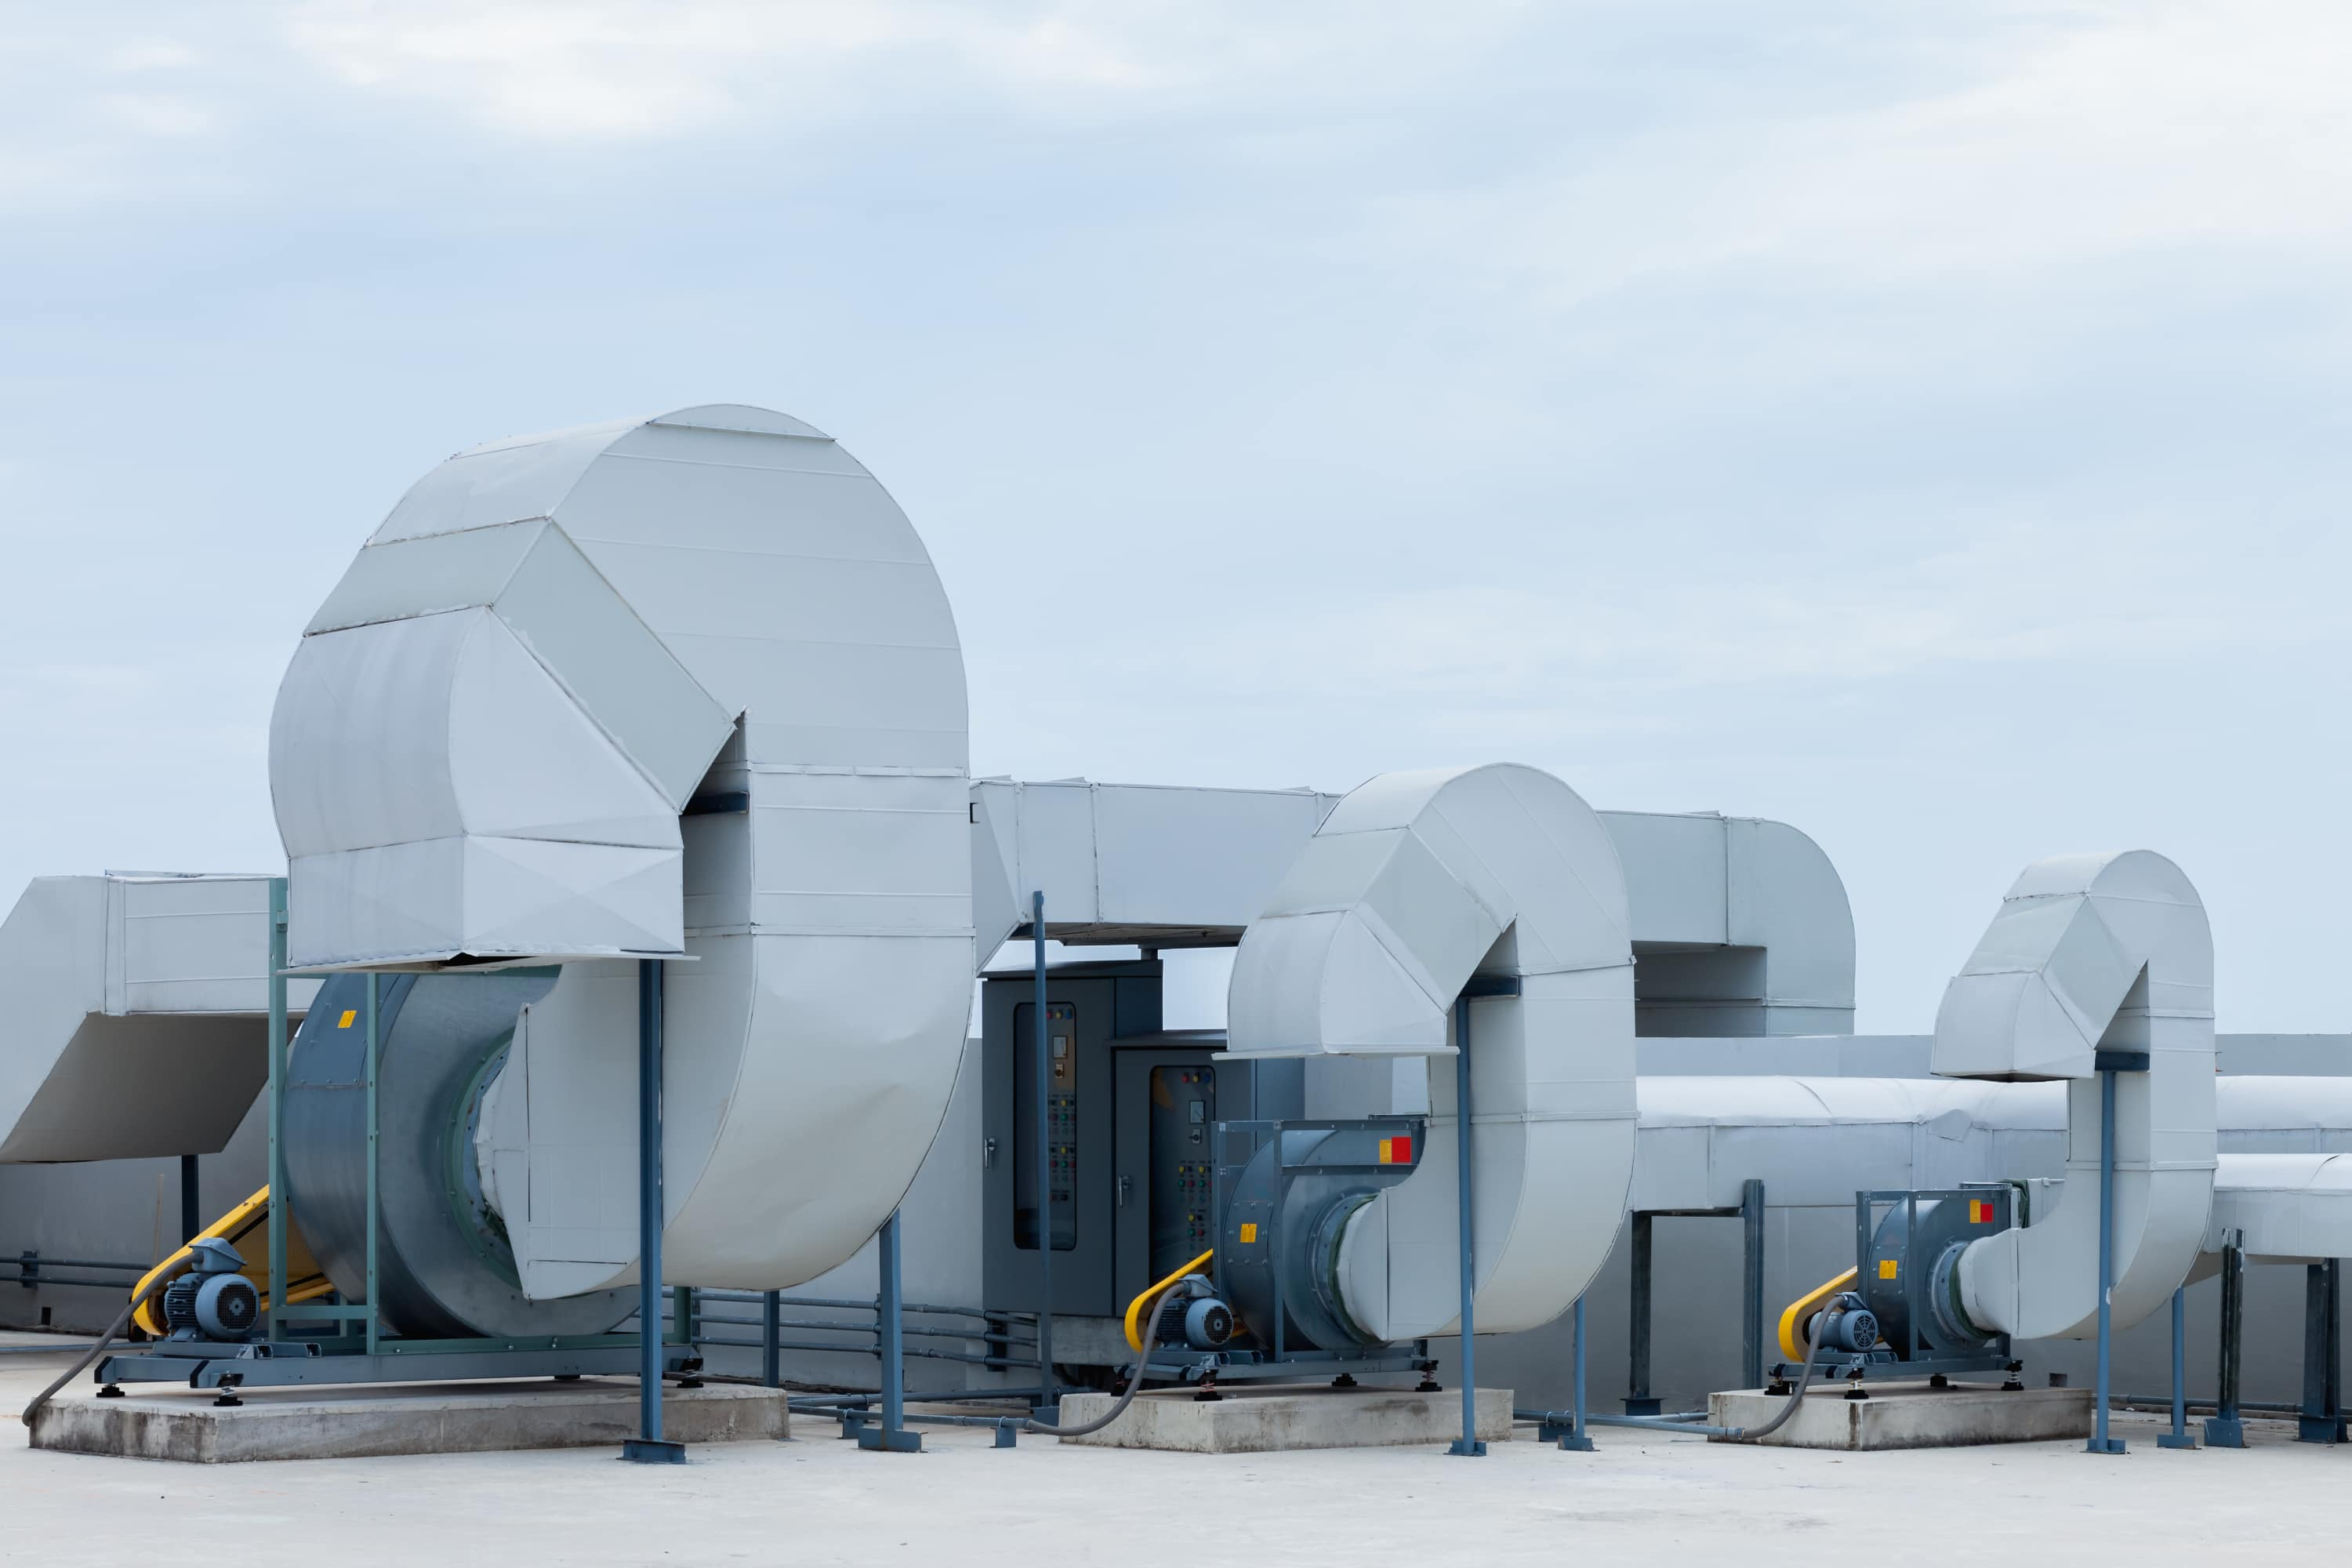 Industrial air conditioning units on a rooftop.